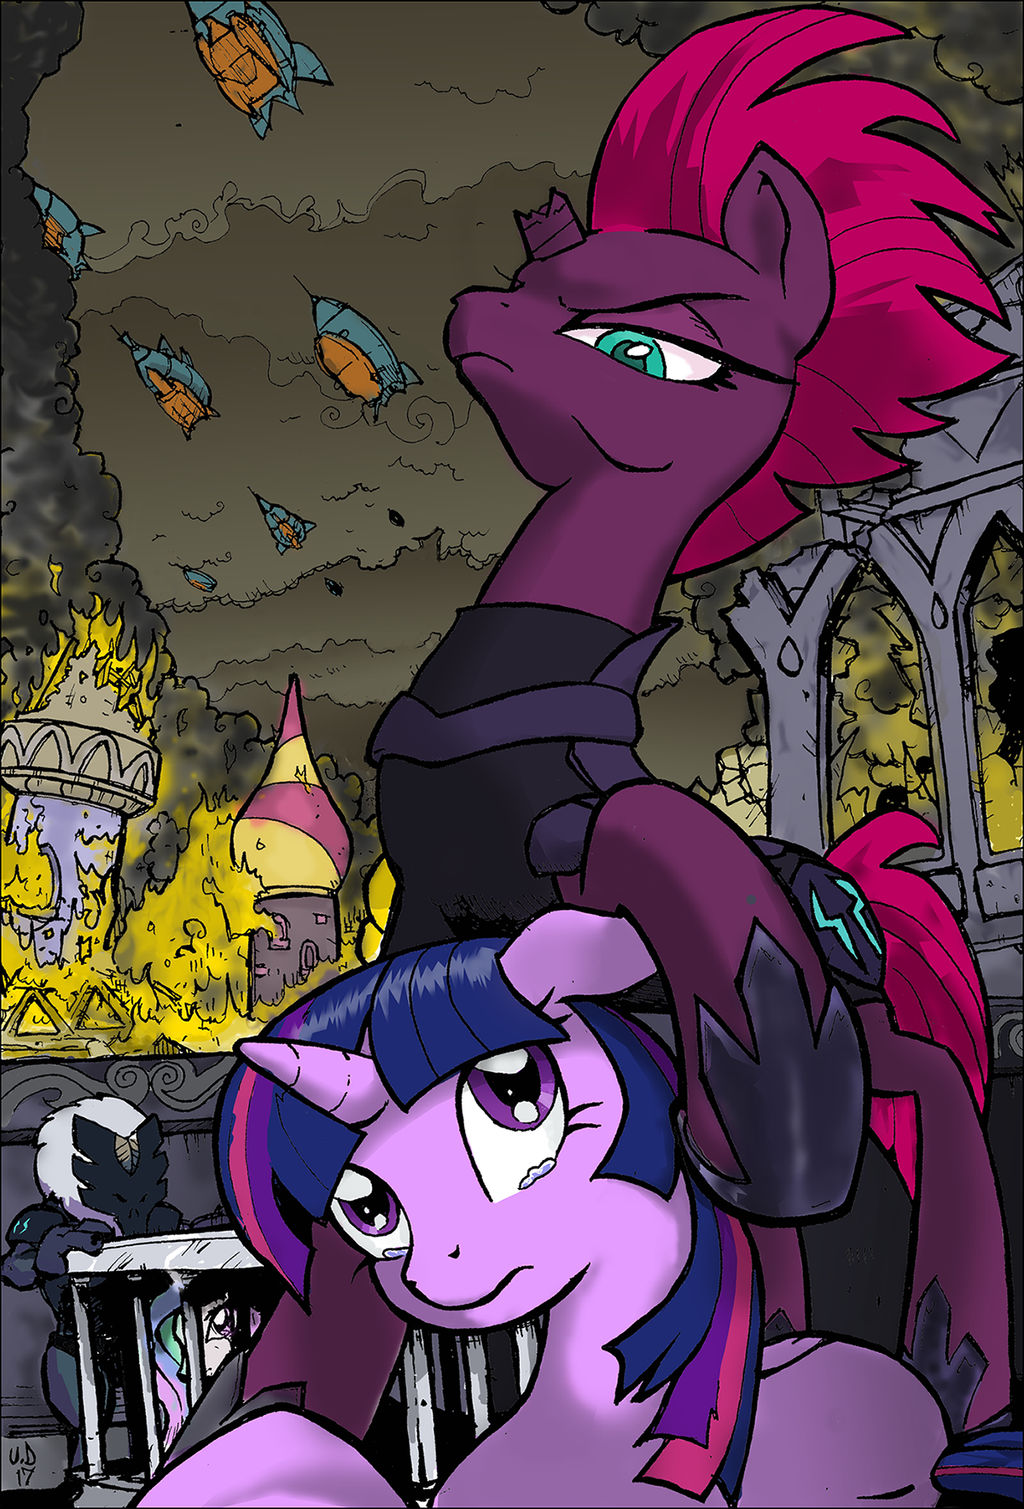 Come now, little one by YewDee